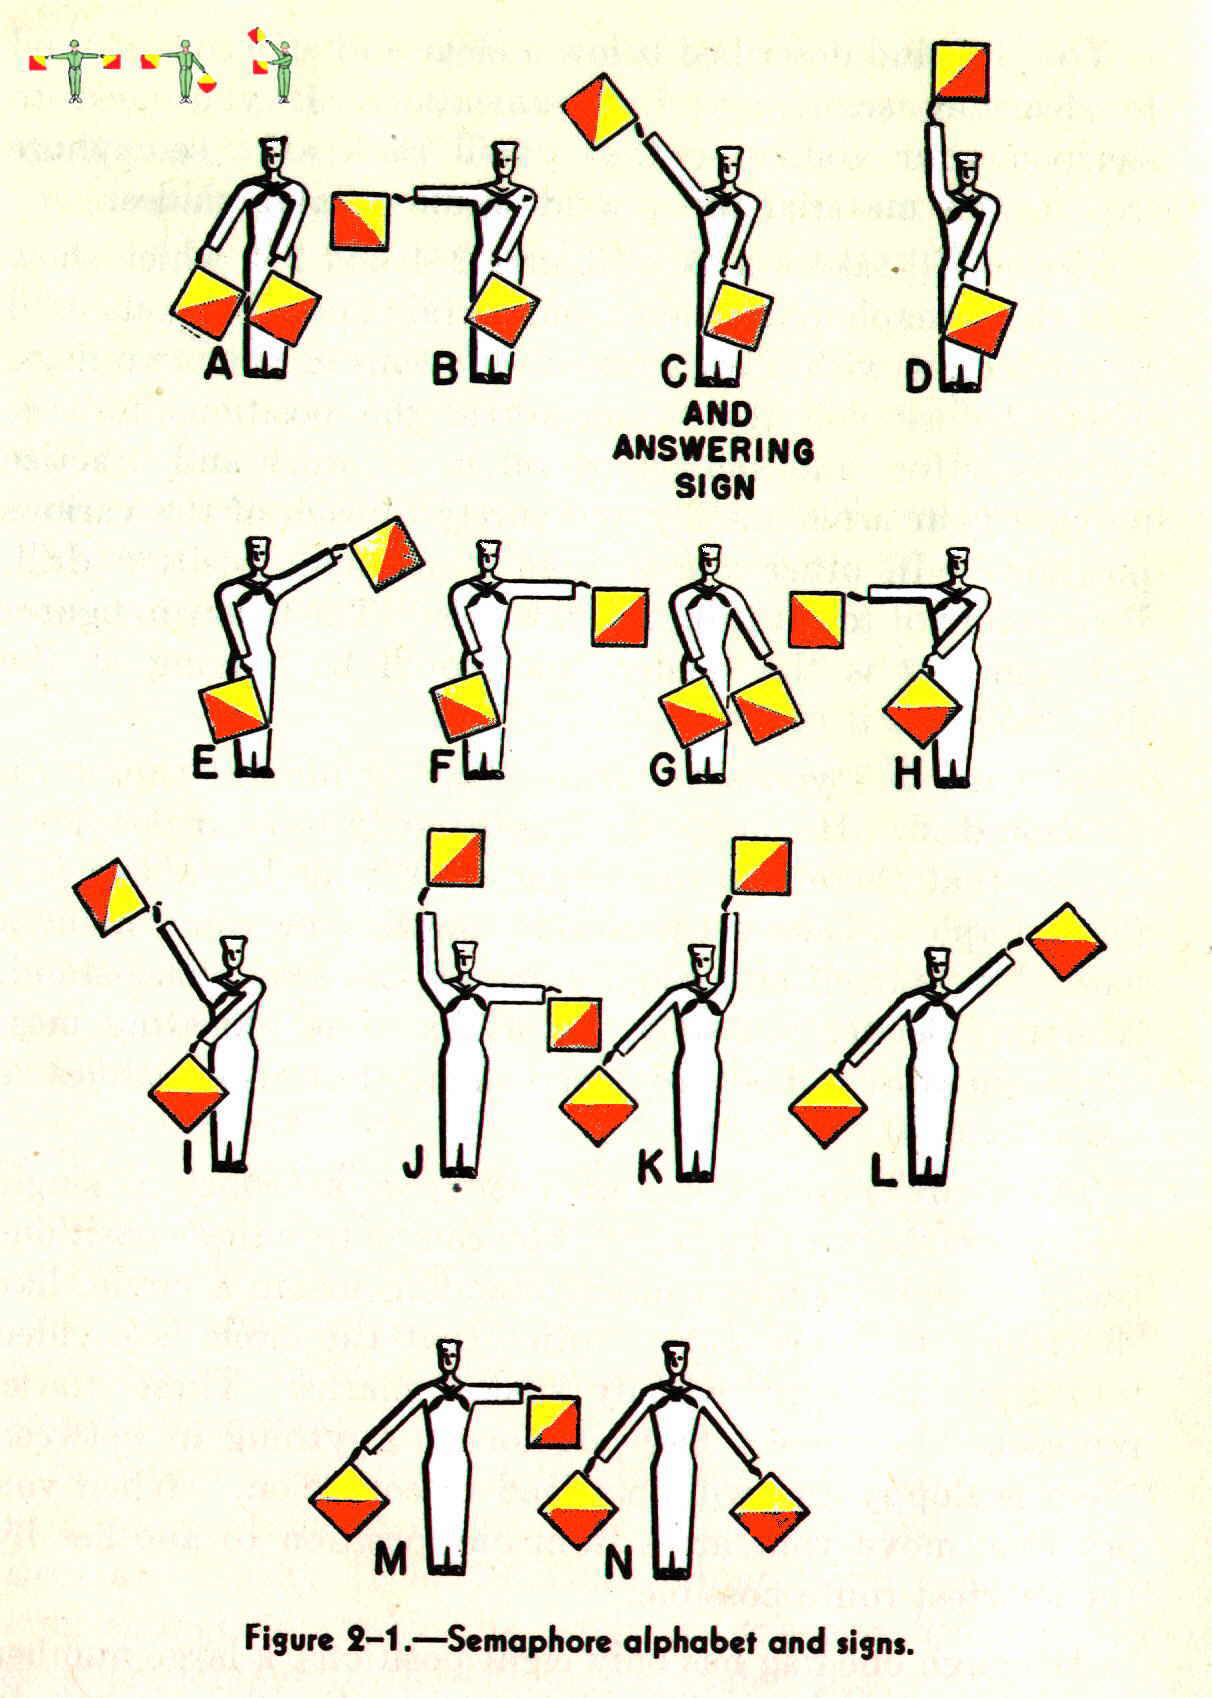 Royal Signals ... The Semaphore Wheel A to N